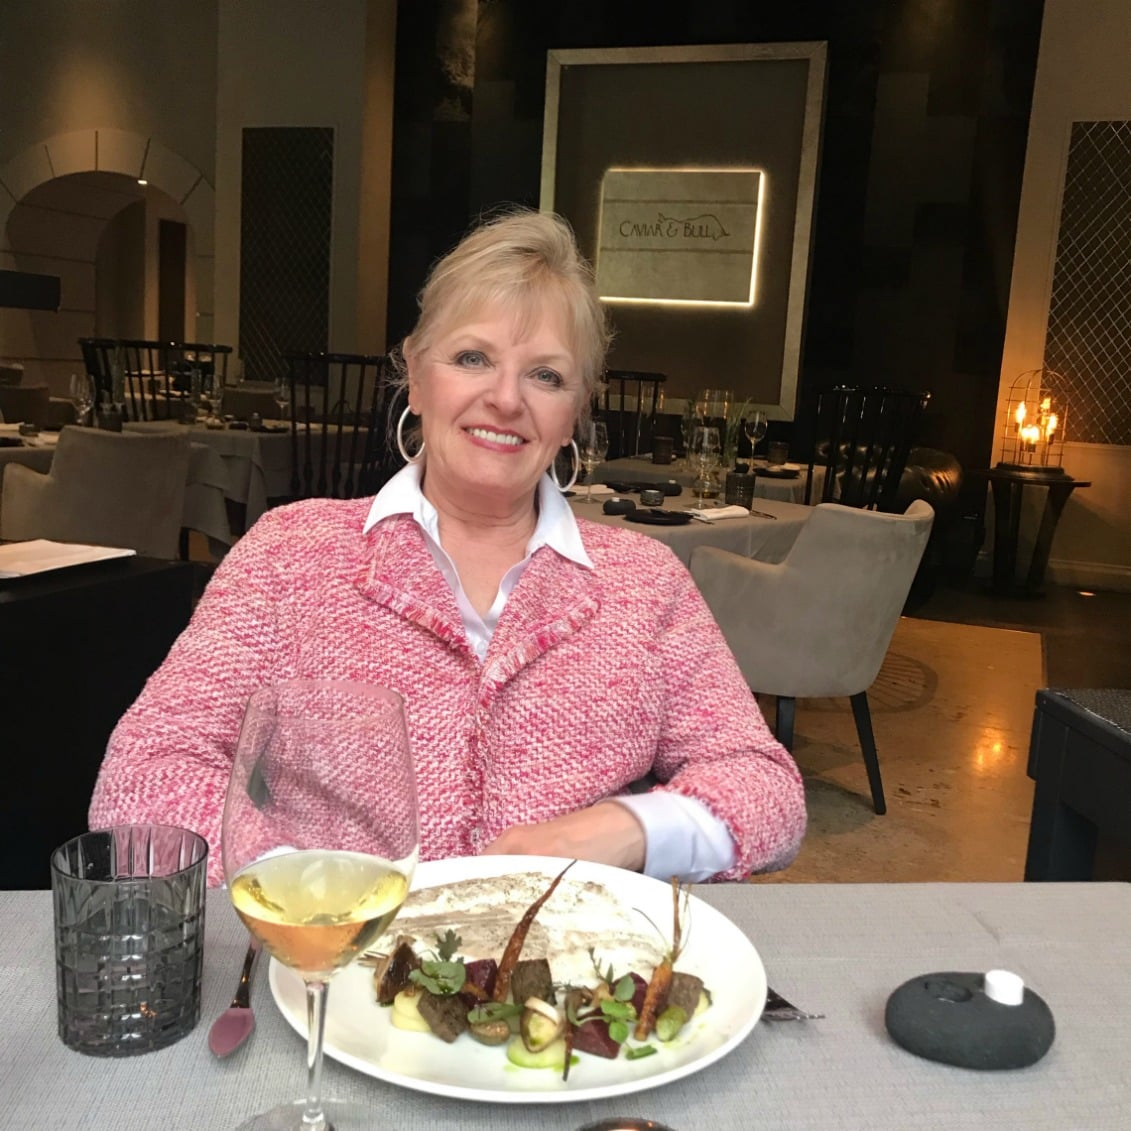 Jennifer Conneatting at the Caviar and Bull restaurant in Budapestolly of A Well Styled Life